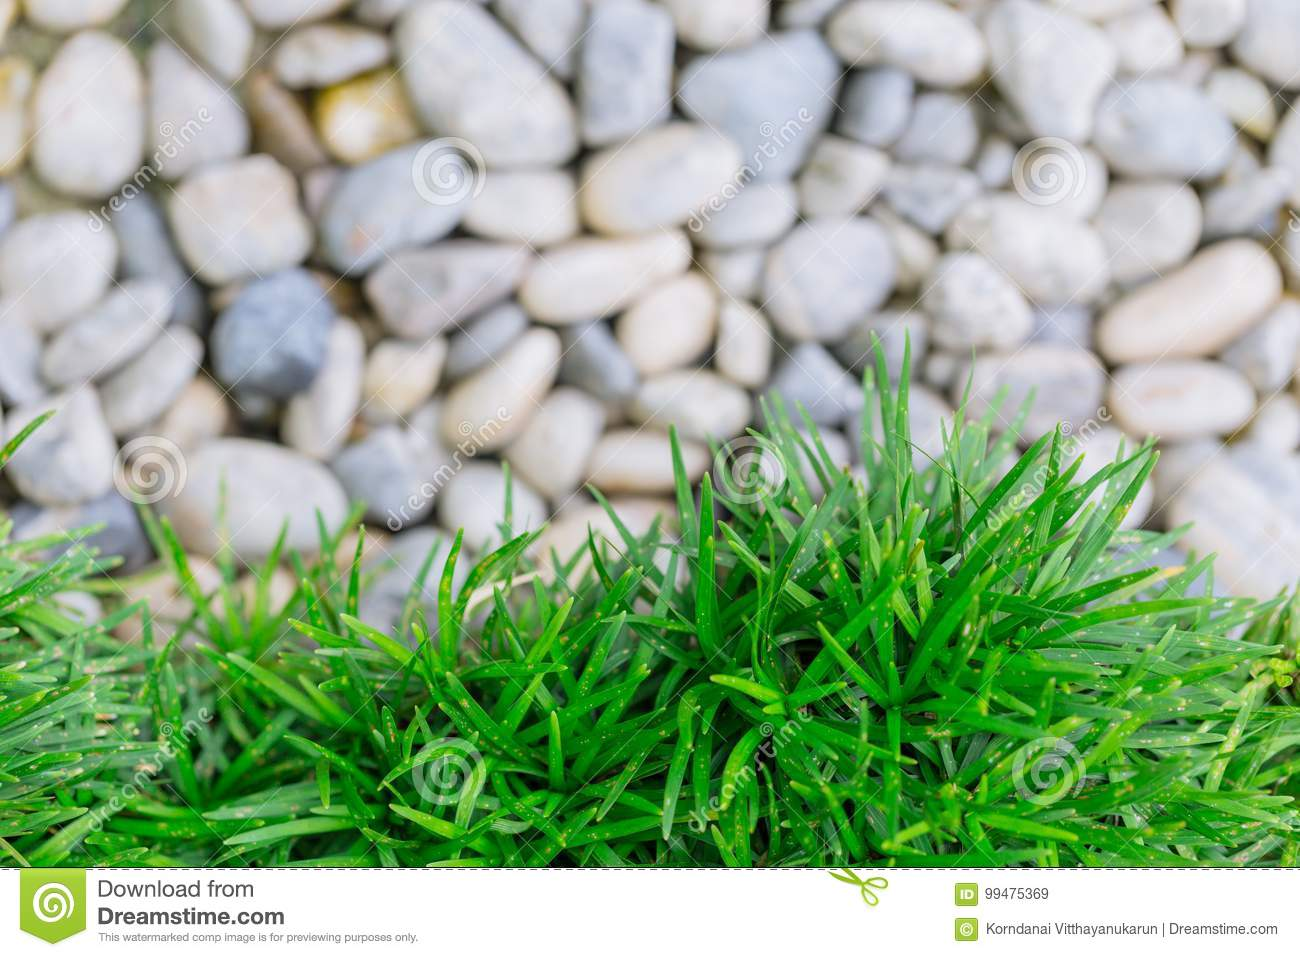 Green grass with white stone